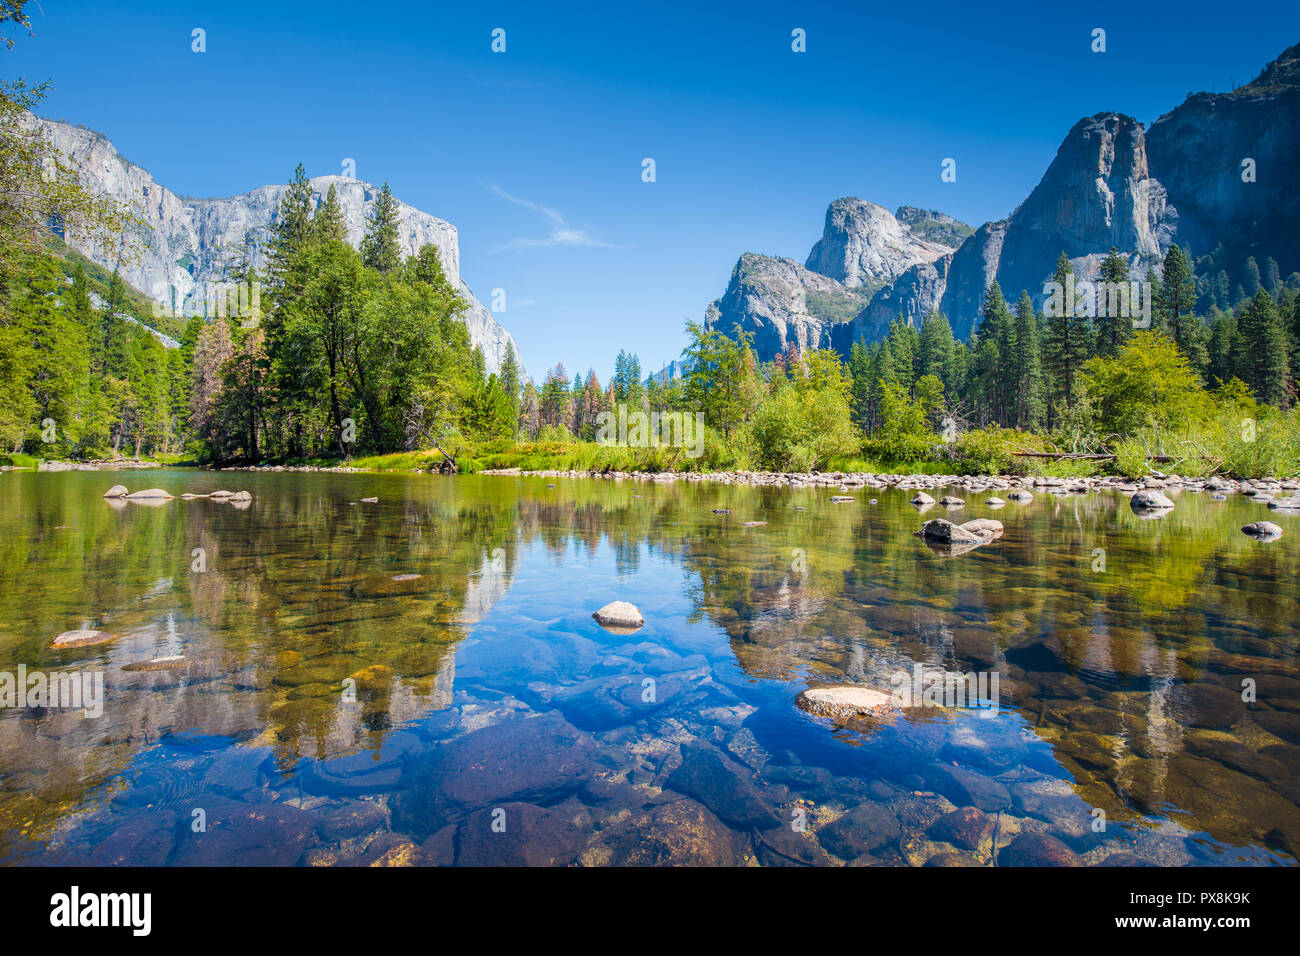 Classic view of scenic Yosemite Valley with famous El Capitan rock climbing summit and idyllic Merced river on a sunny day with blue sky and clouds - Stock Image